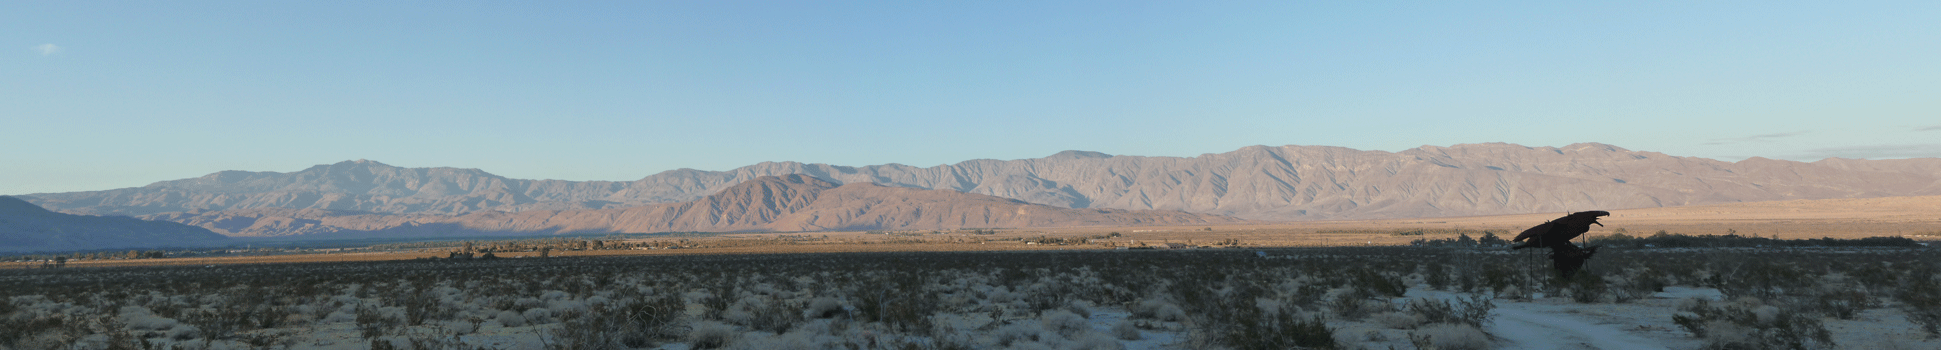 Borrego Springs afternoon light